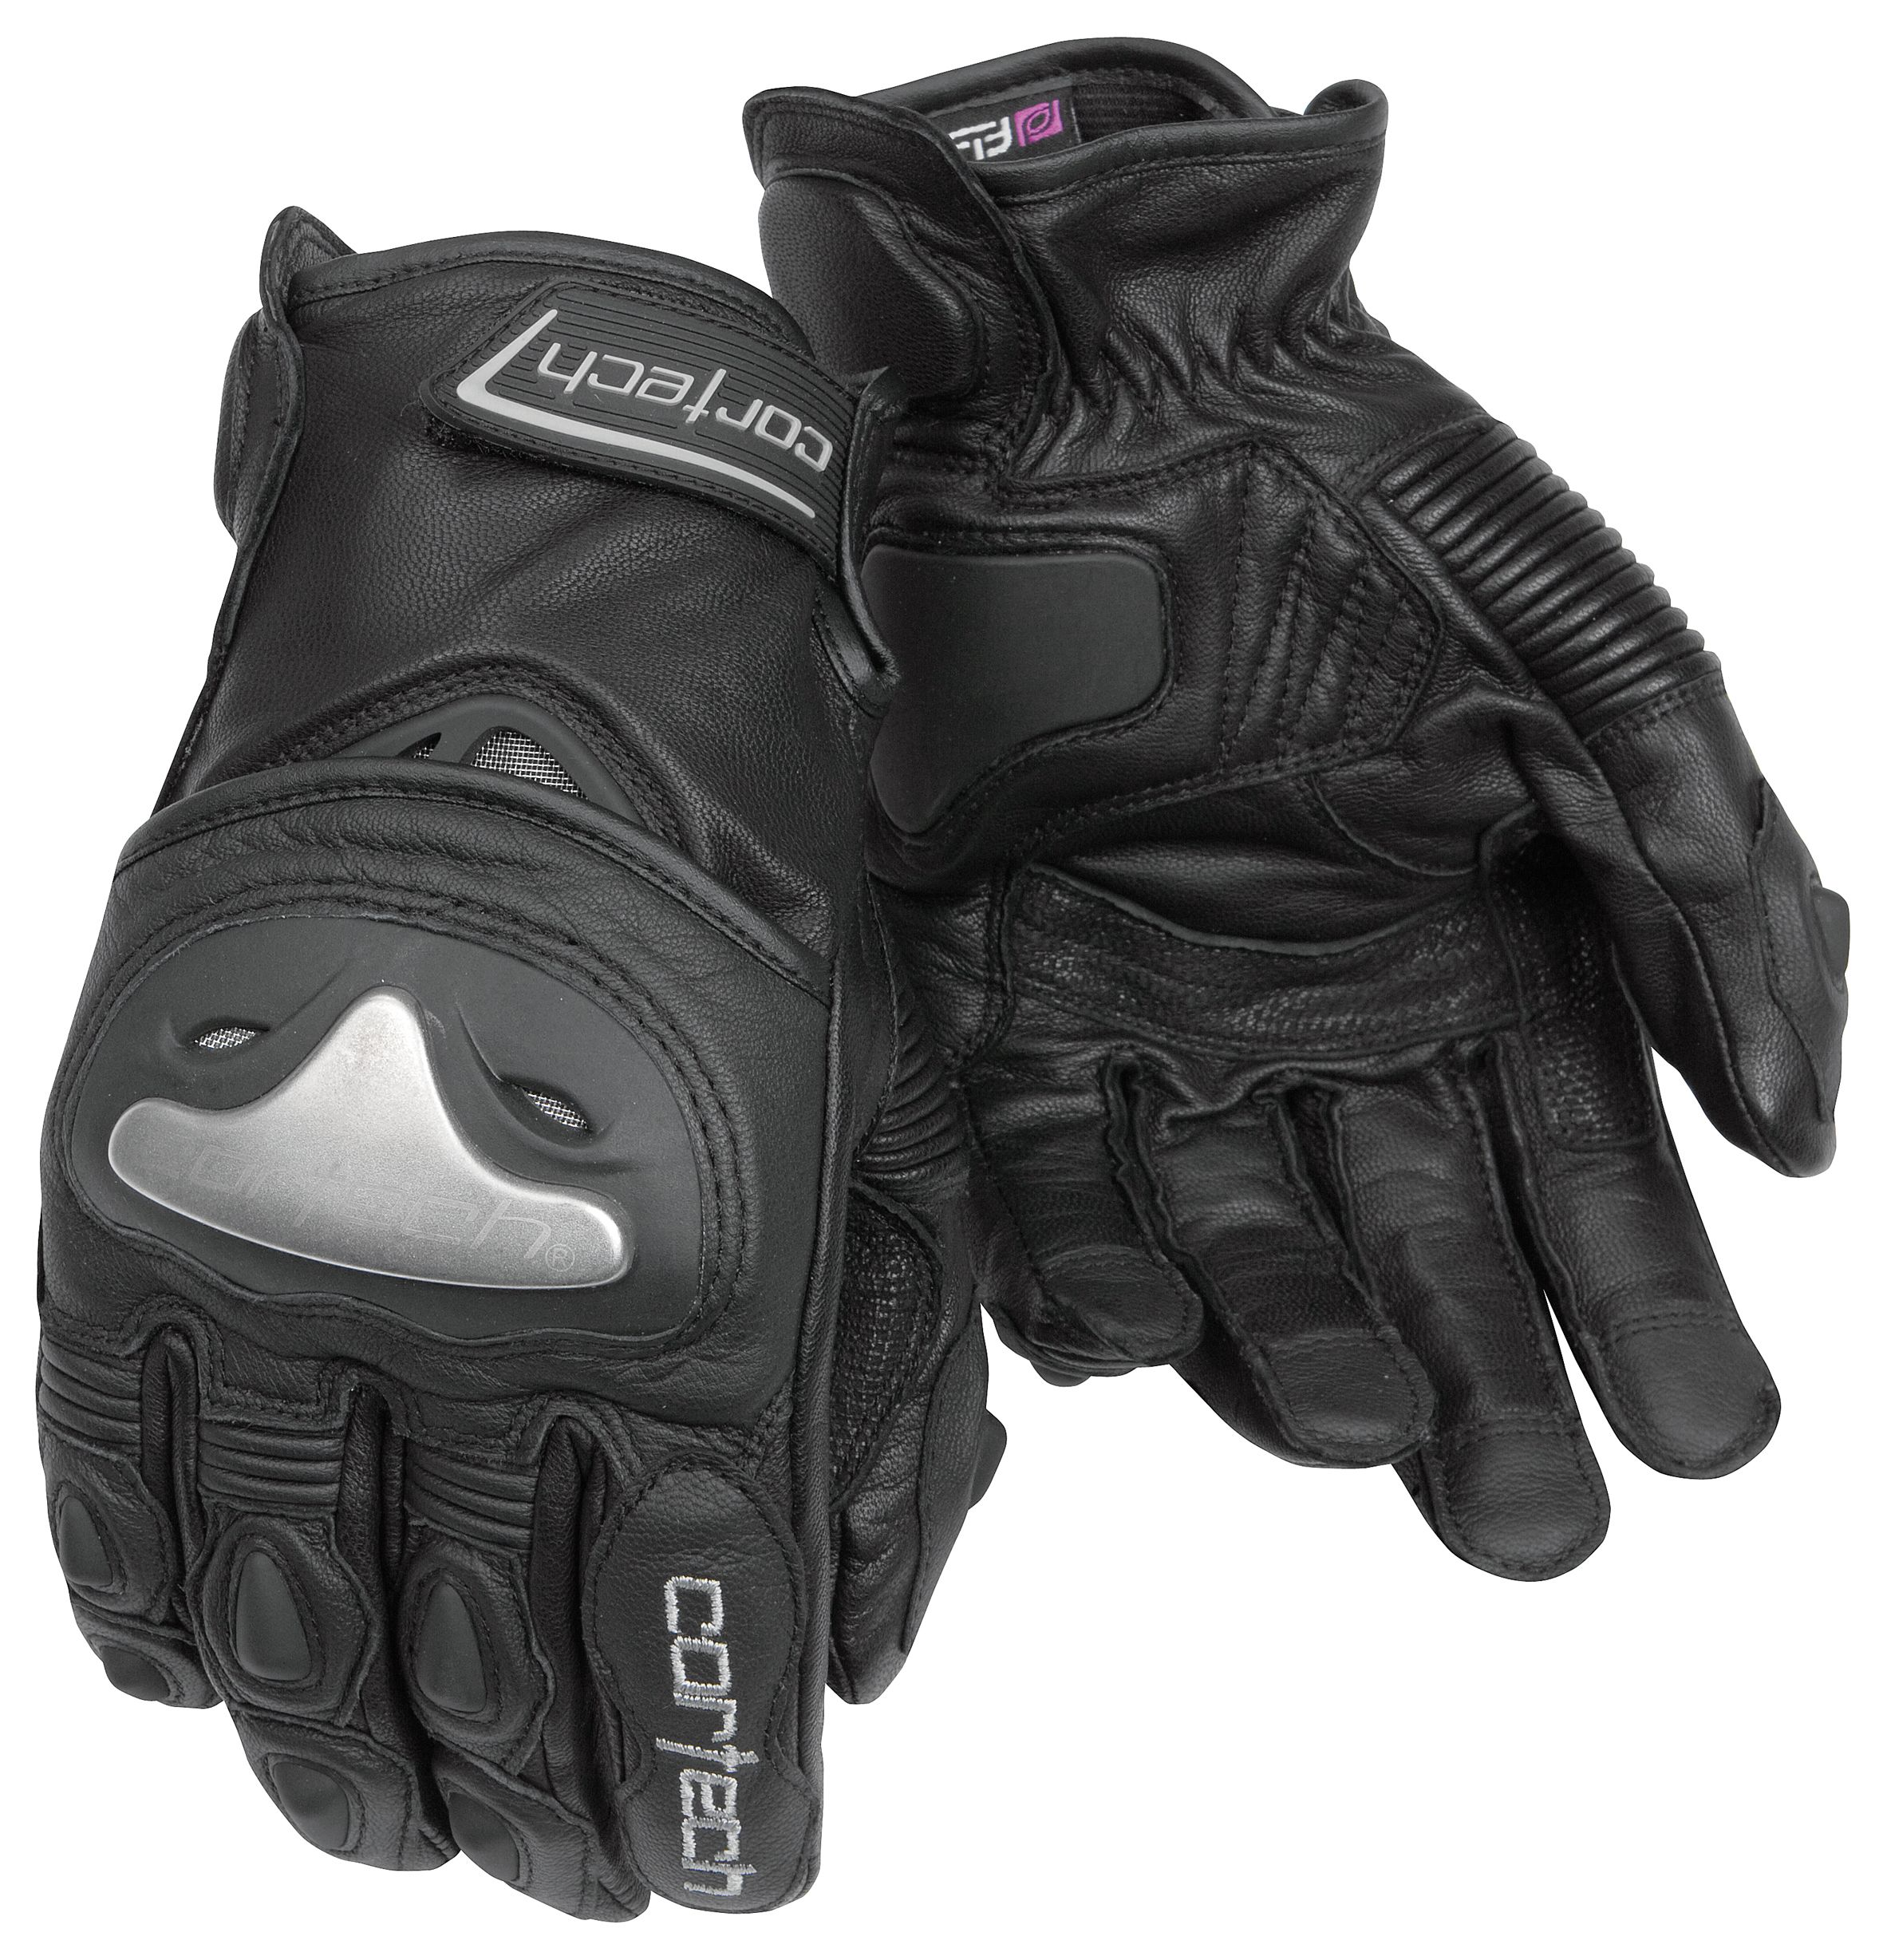 Mens sizes in gloves - Mens Sizes In Gloves 58